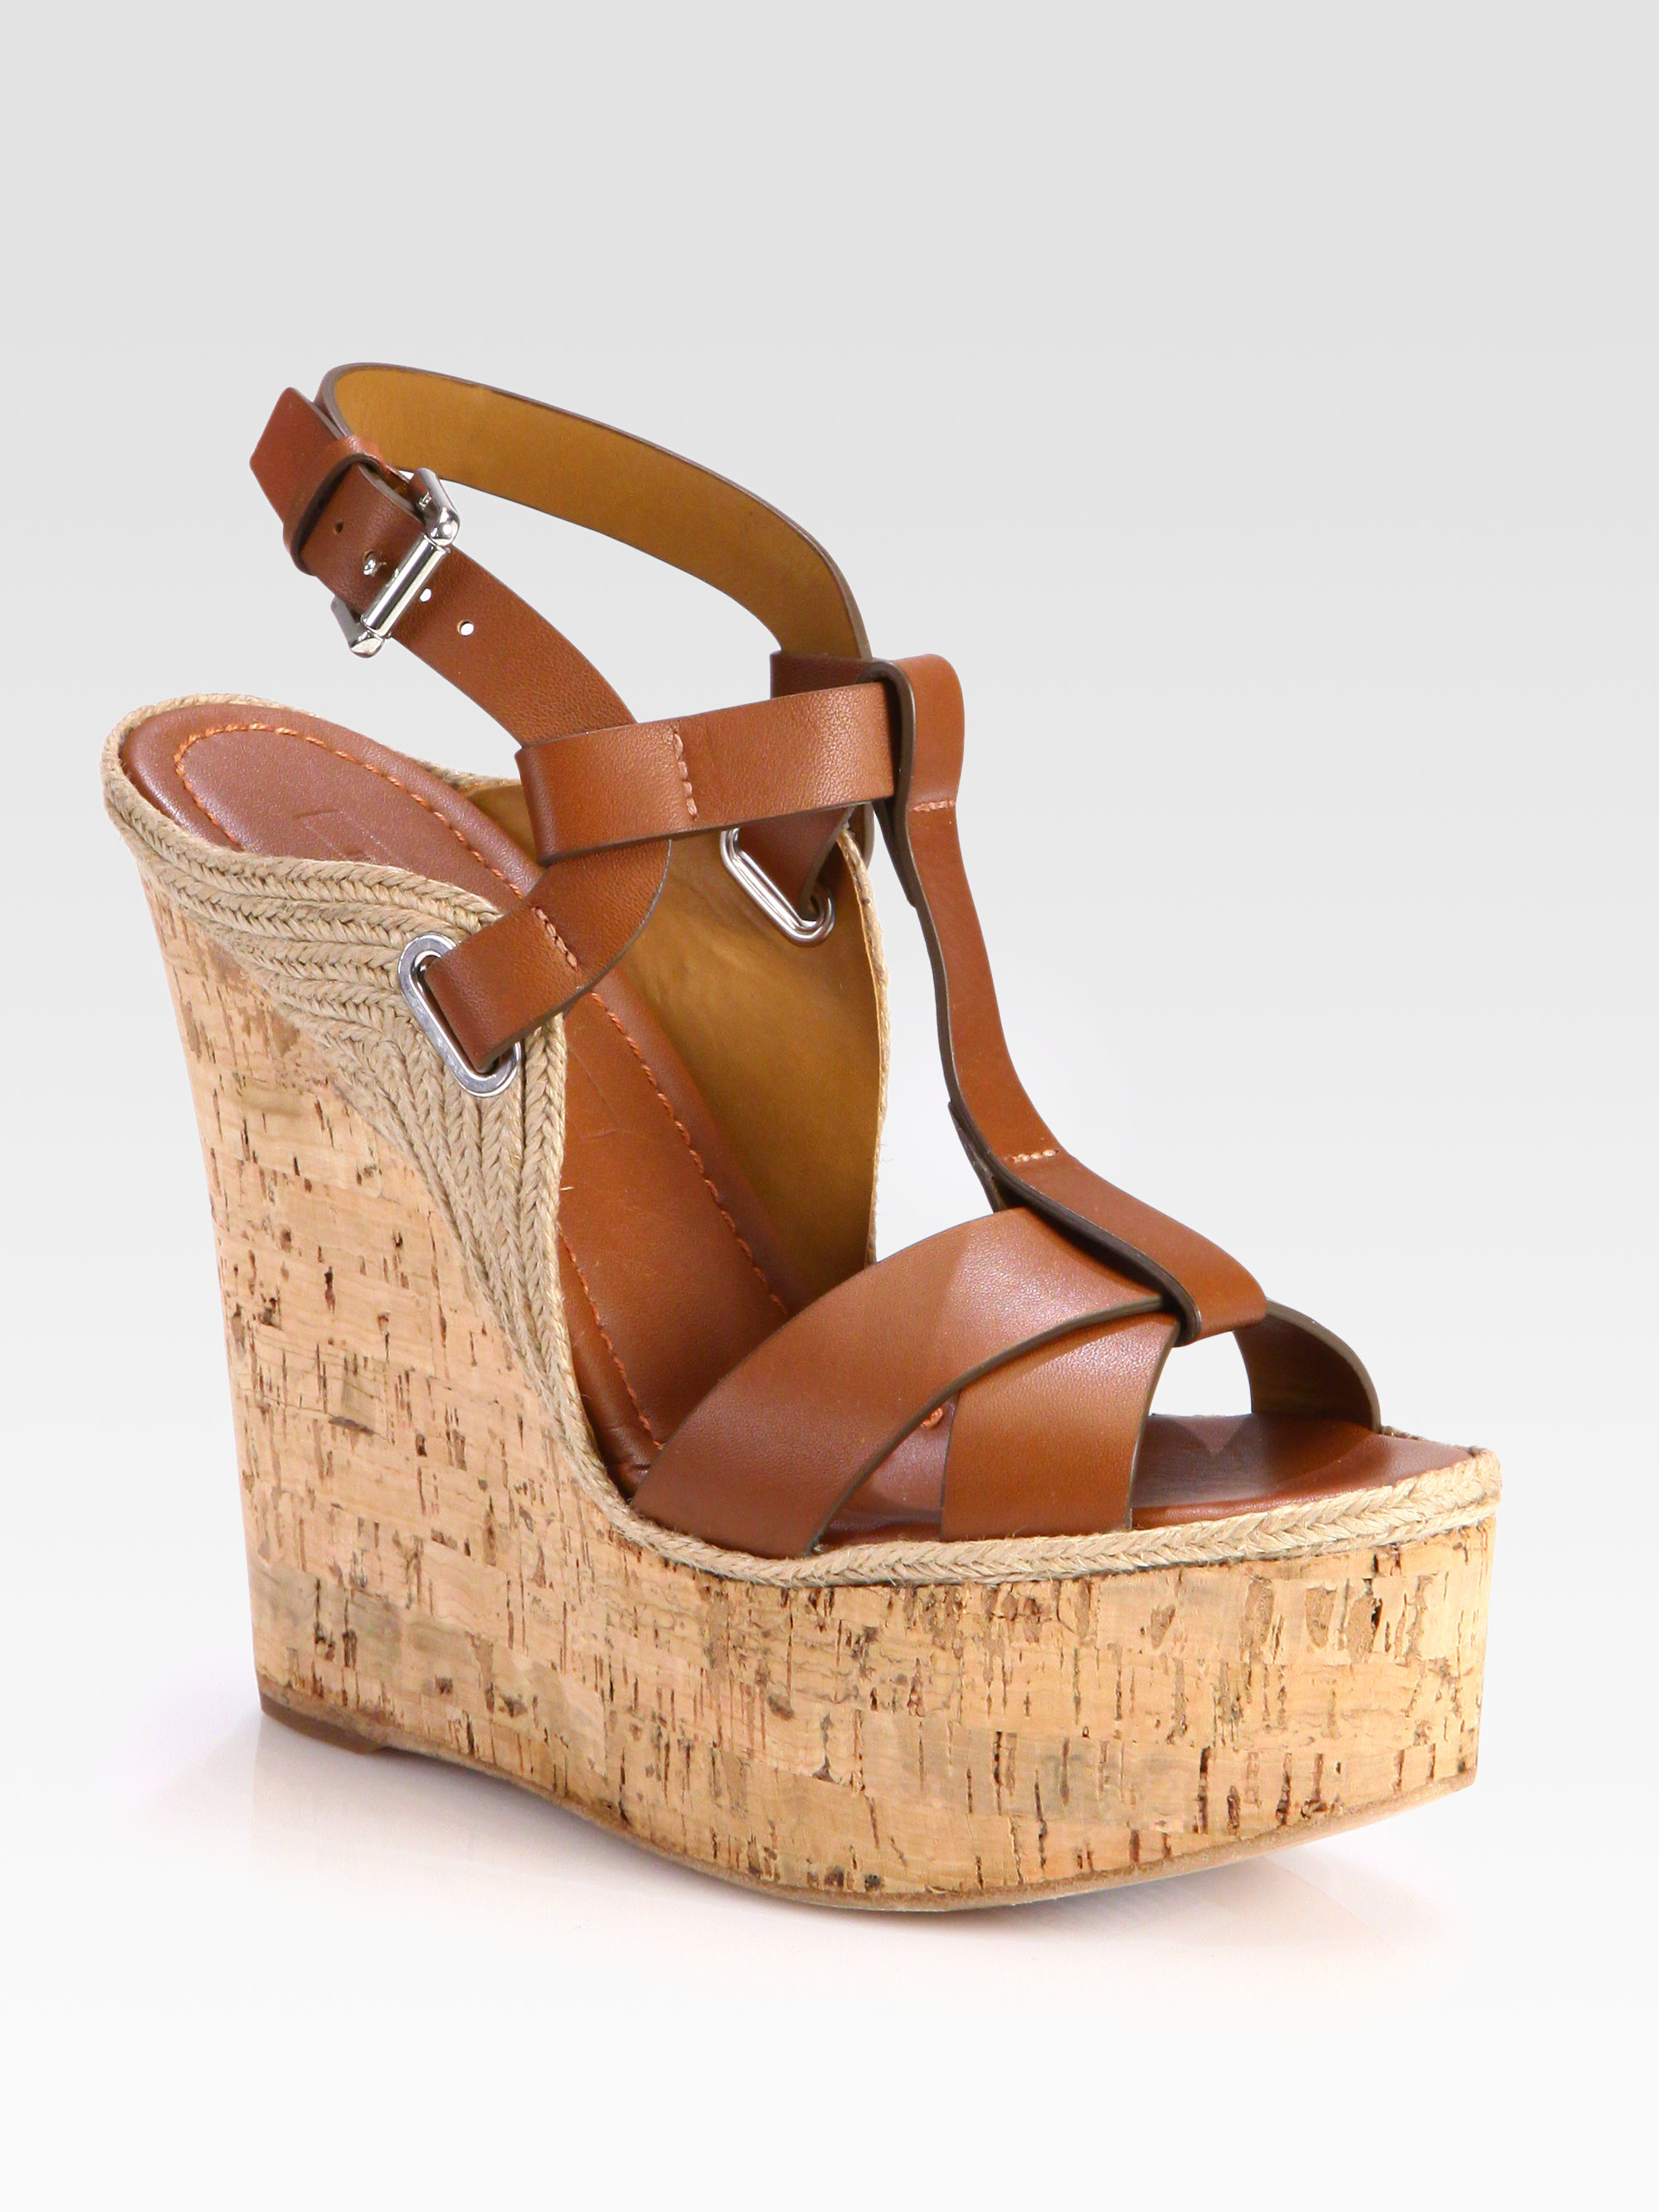 clearance cheap Ralph Lauren Leather Wedge Sandals sale 2014 newest GQjLKa